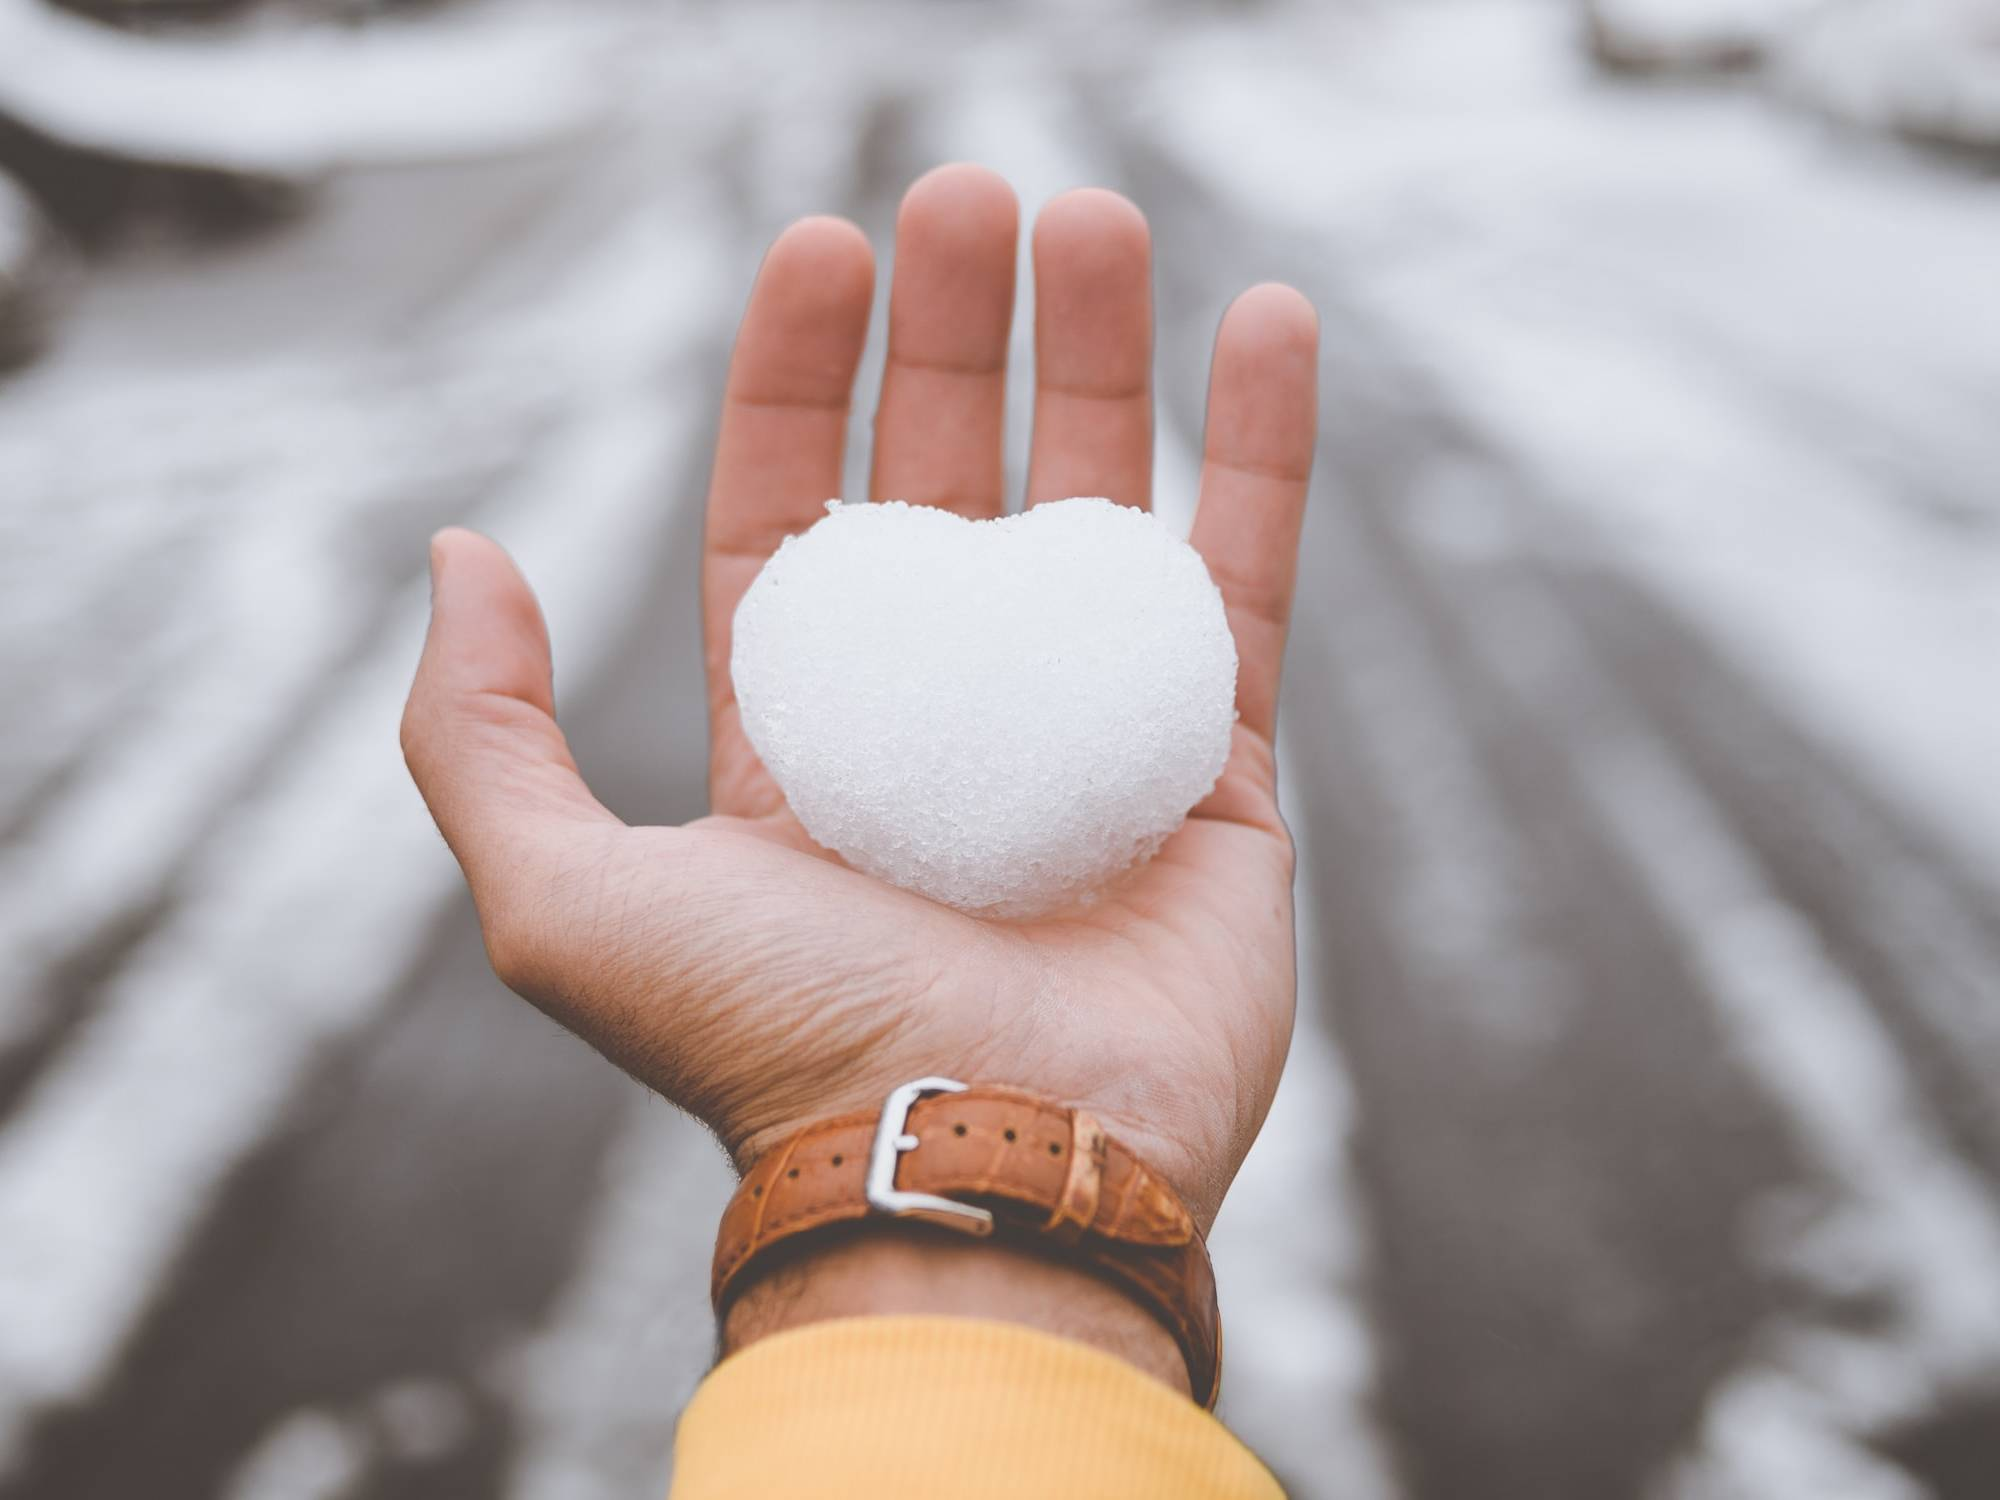 Bare hand holding heart-shaped snow ball.